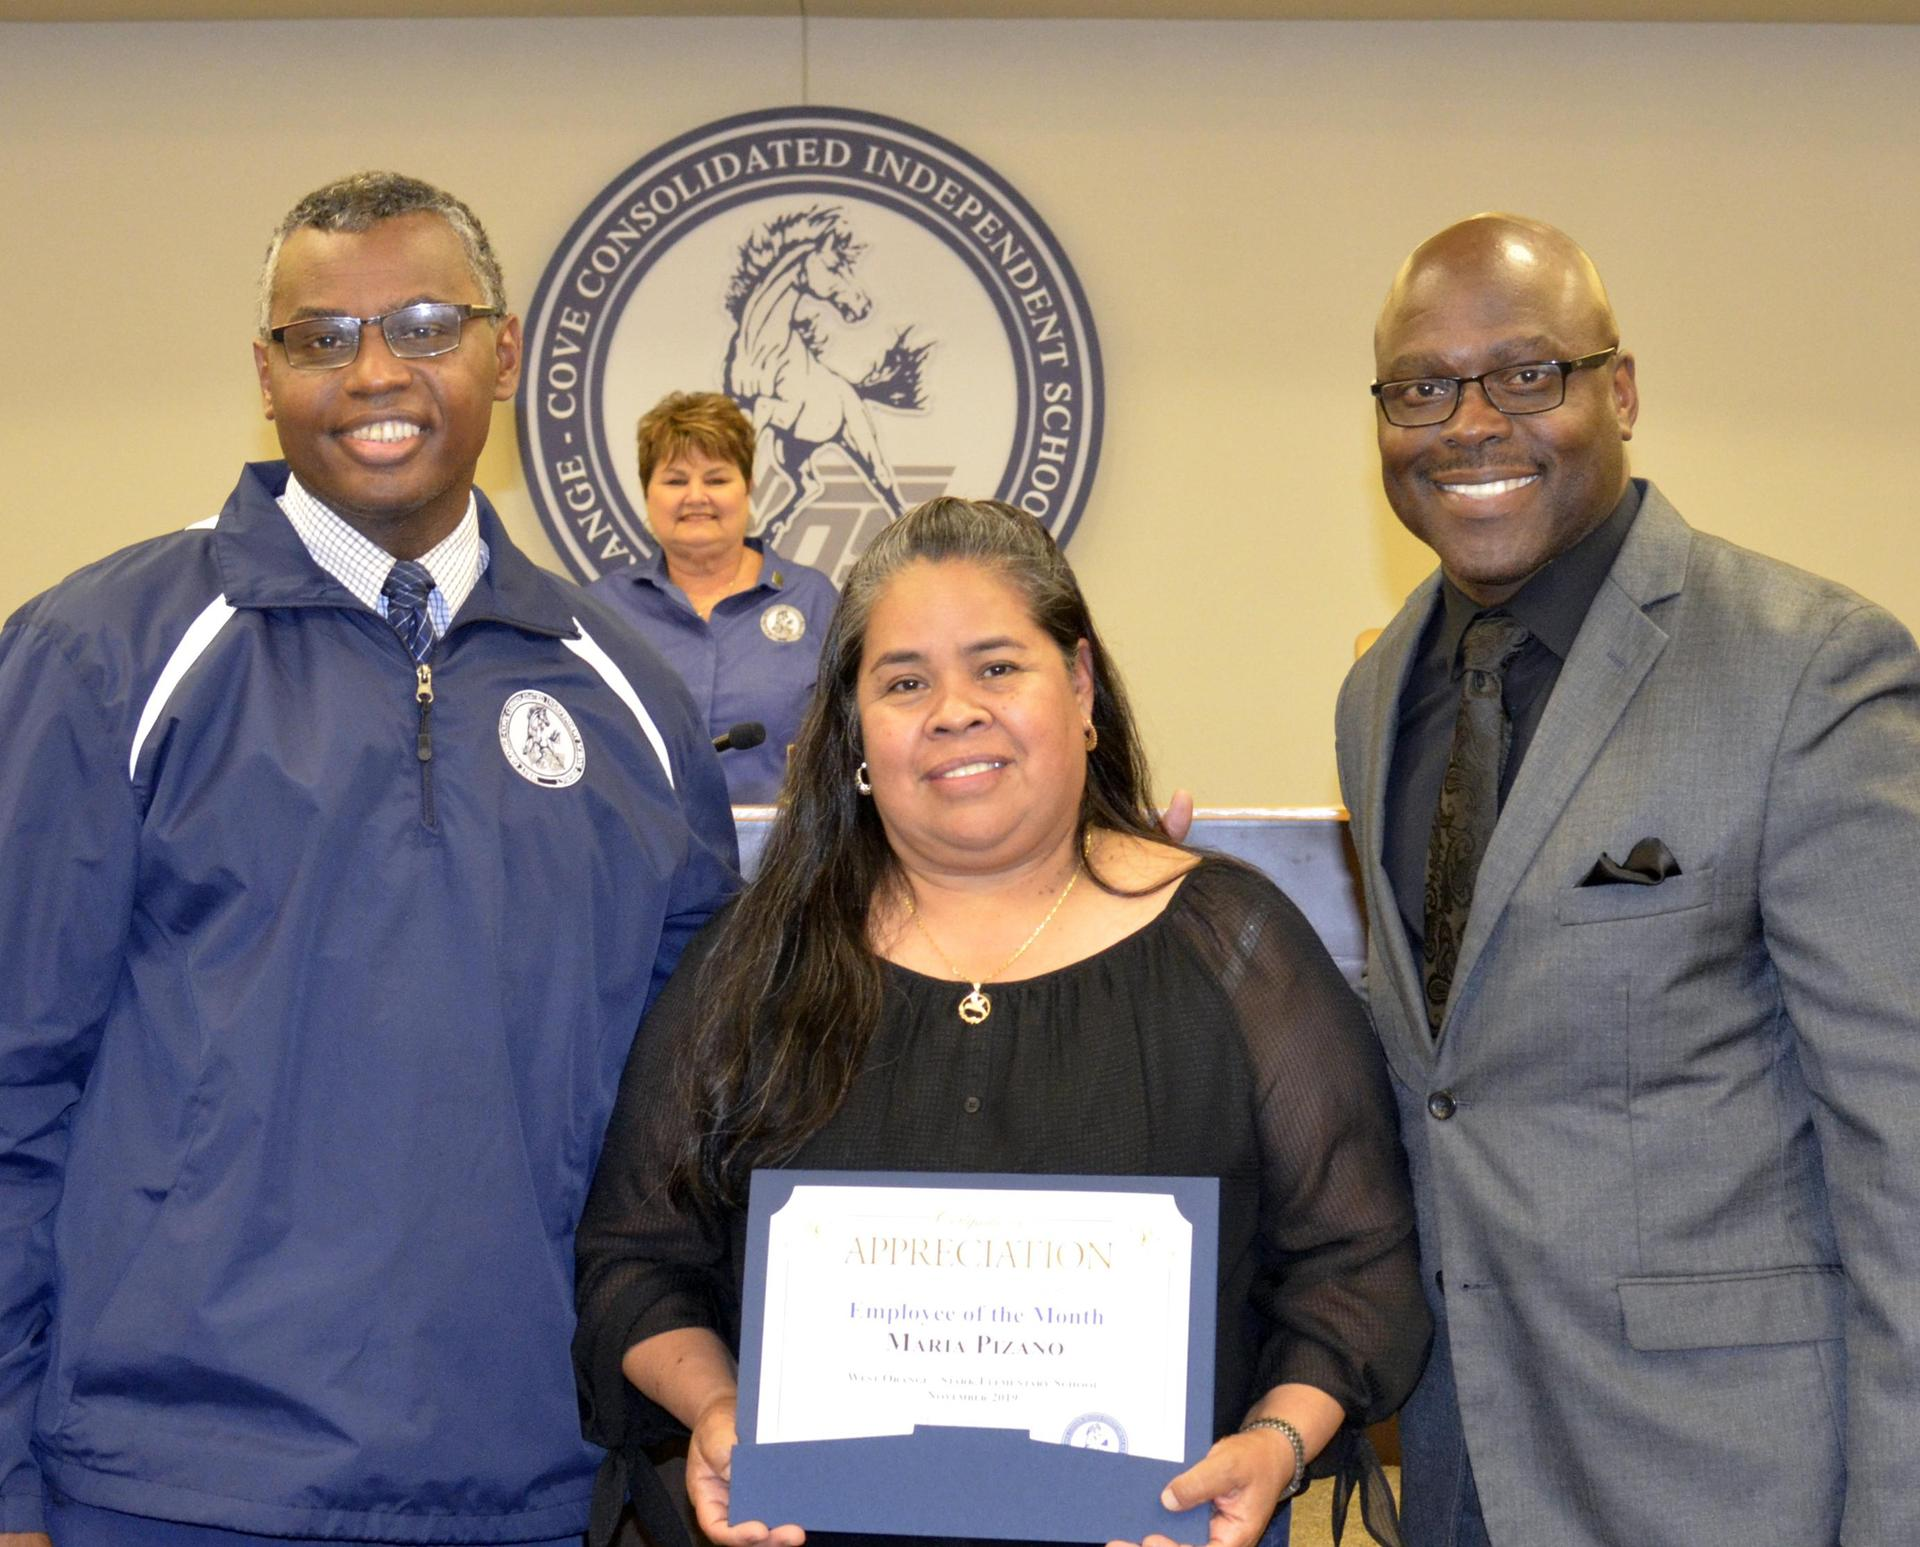 Maria Pizano,Employee of the Month for November, pictured with Principal Dr. Bethley and Superintendent Dr. Harris